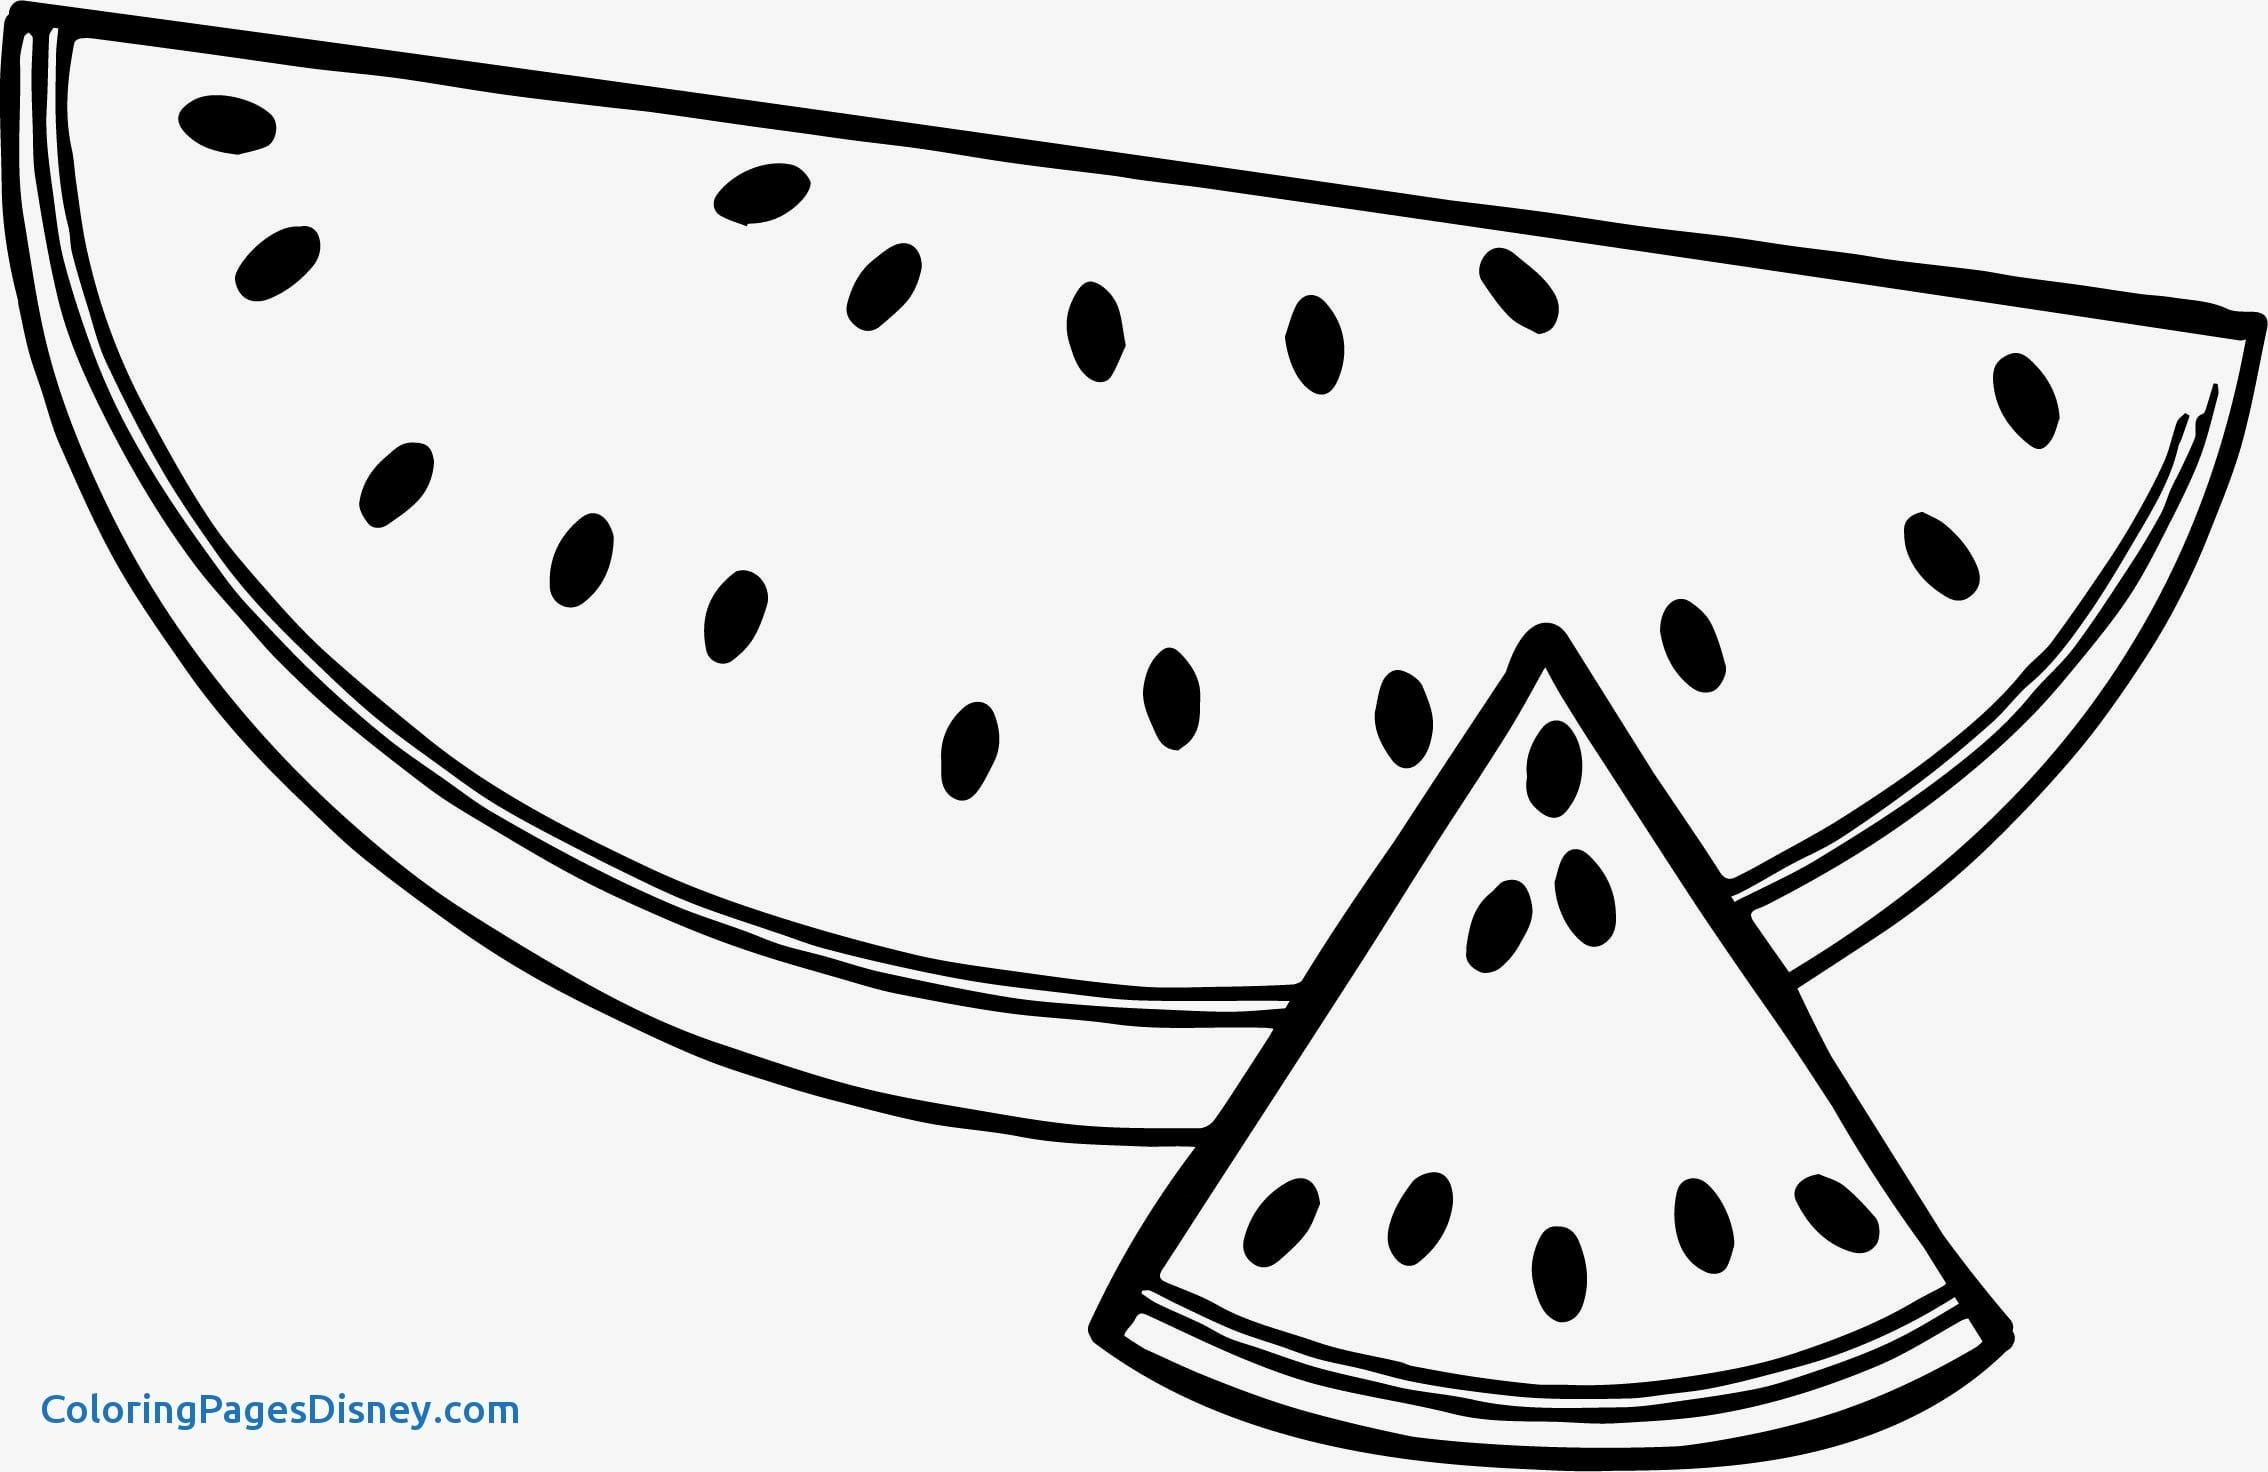 Watermelon Coloring Pages 6 With Watermelon Coloring Page